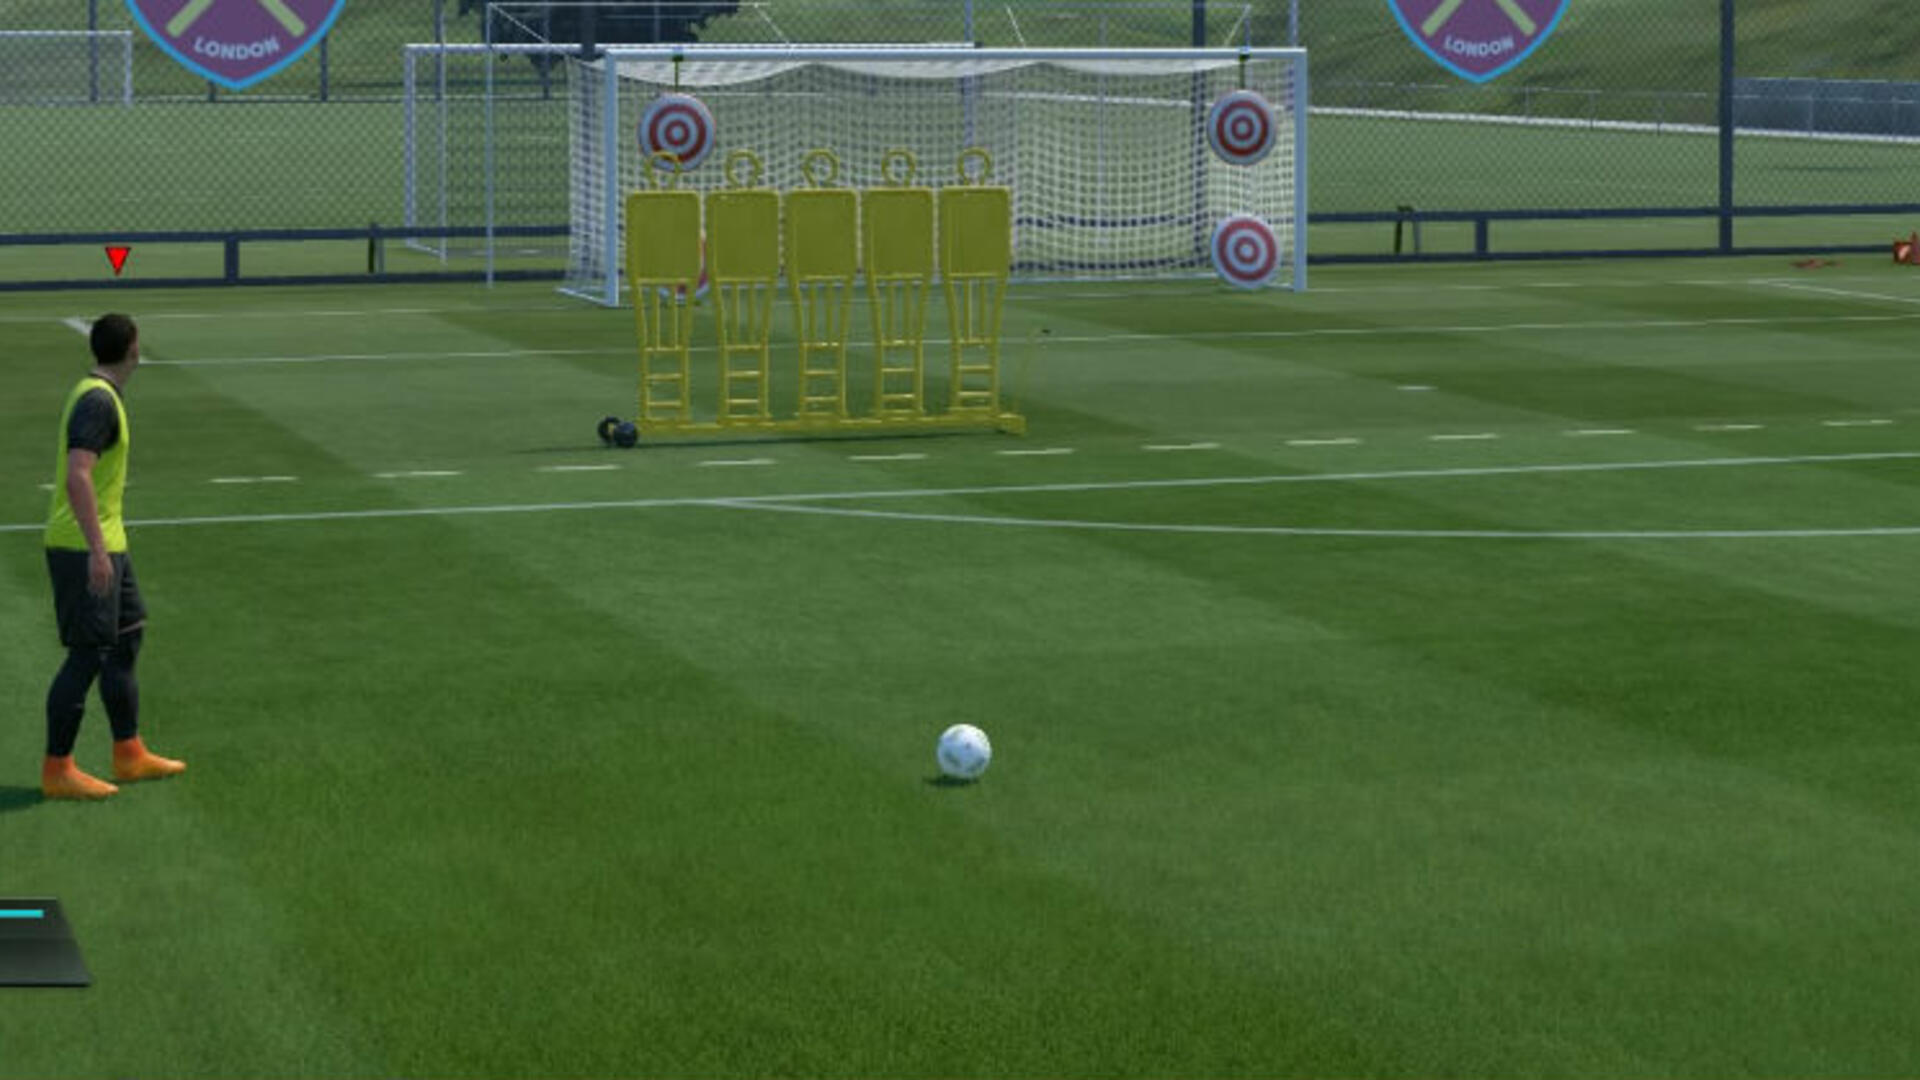 FIFA 17 Guide: Tips, Tricks, Hints, and More